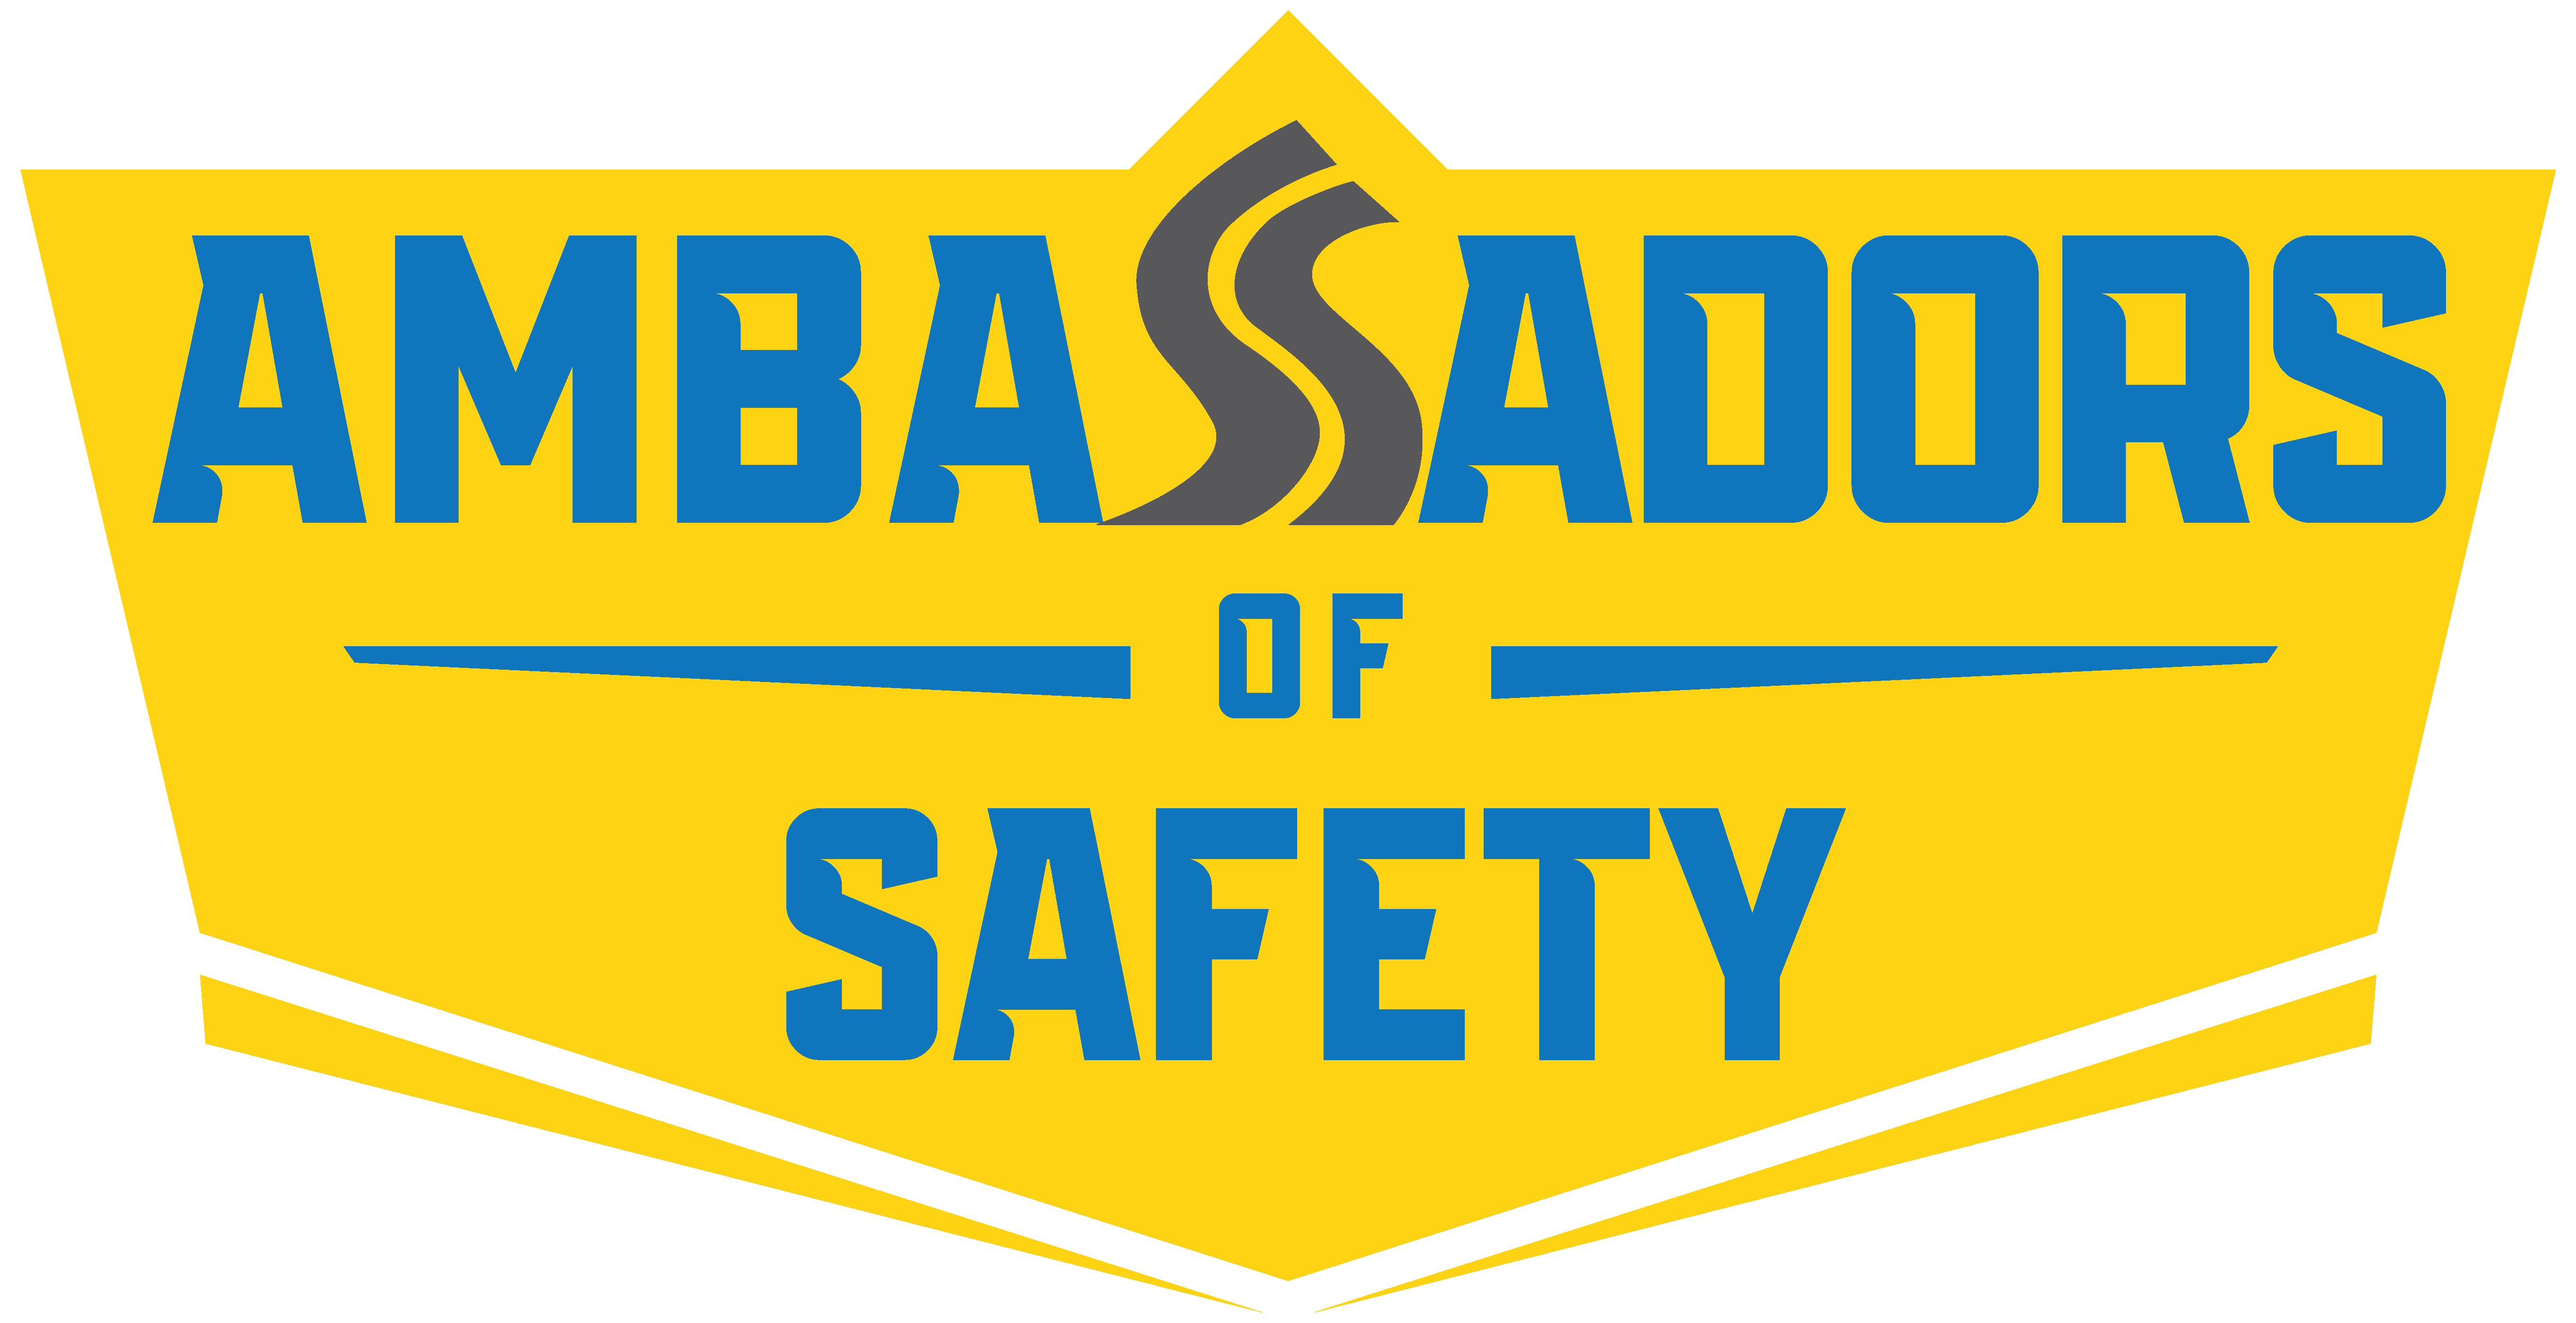 Ambassadors of Safety logo